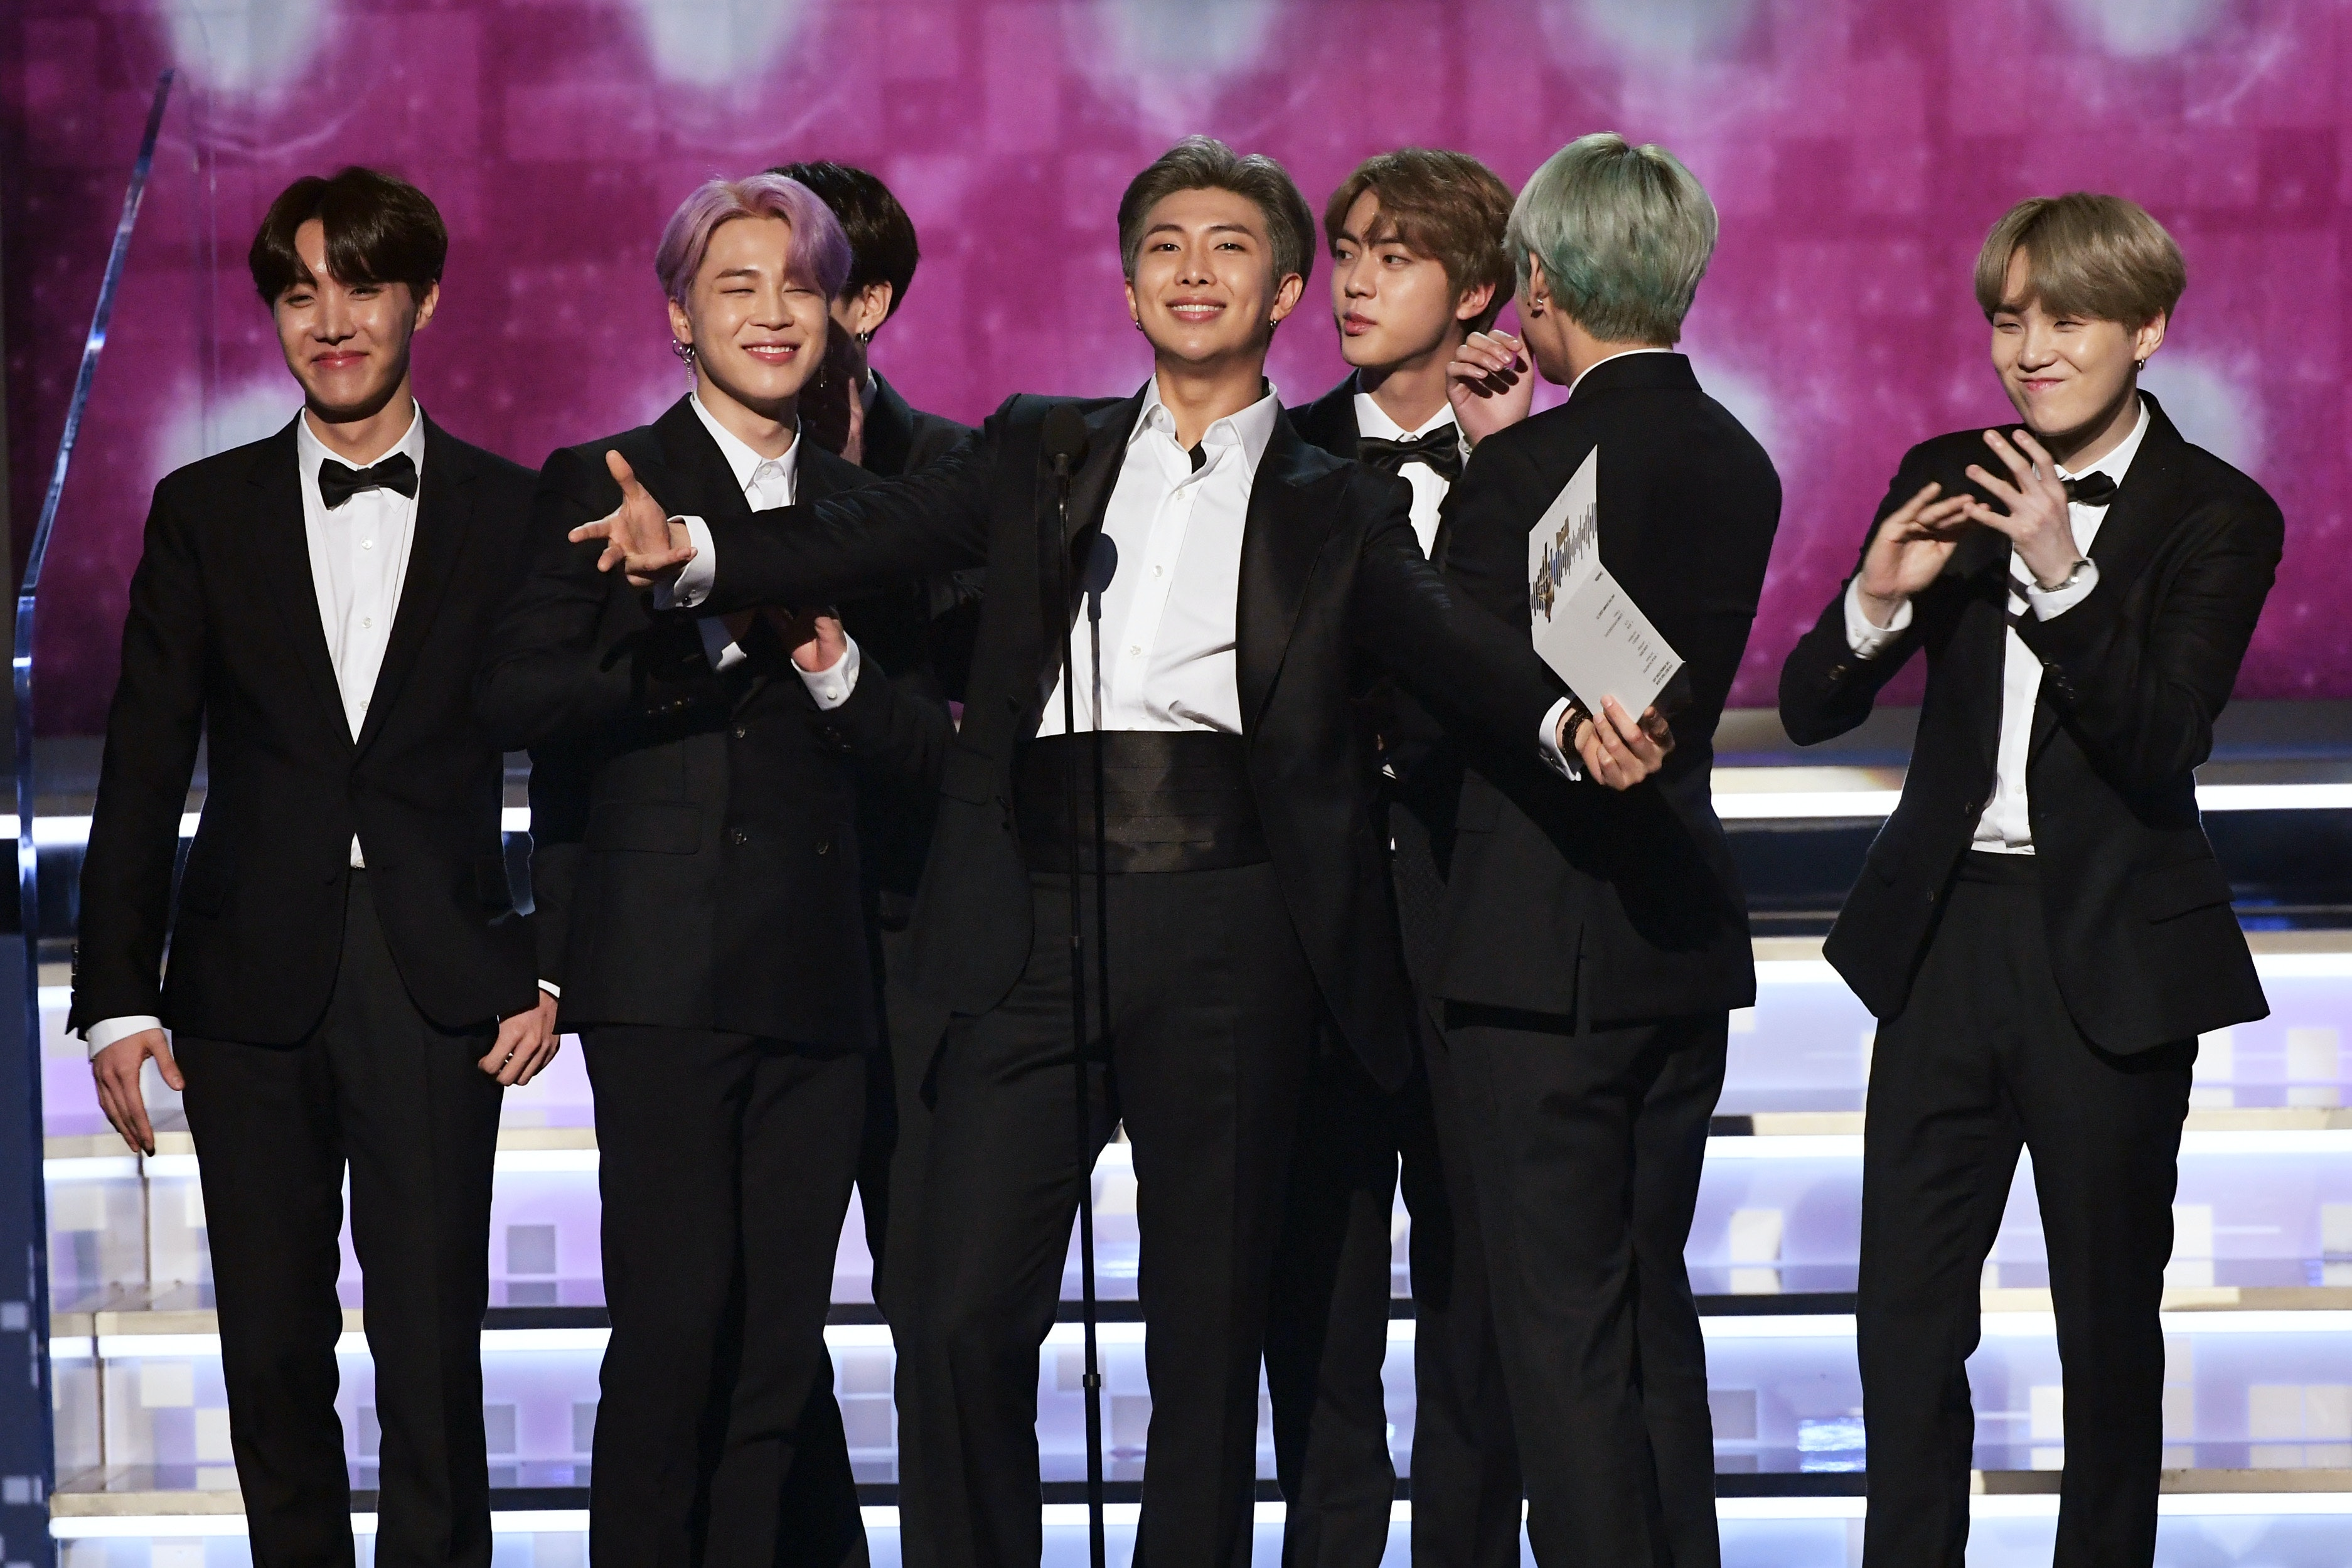 rm changed bts grammys presentation speech on stage to send an epic message to army https www elitedaily com p rm changed bts grammys presentation speech on stage to send epic message to army 15941761